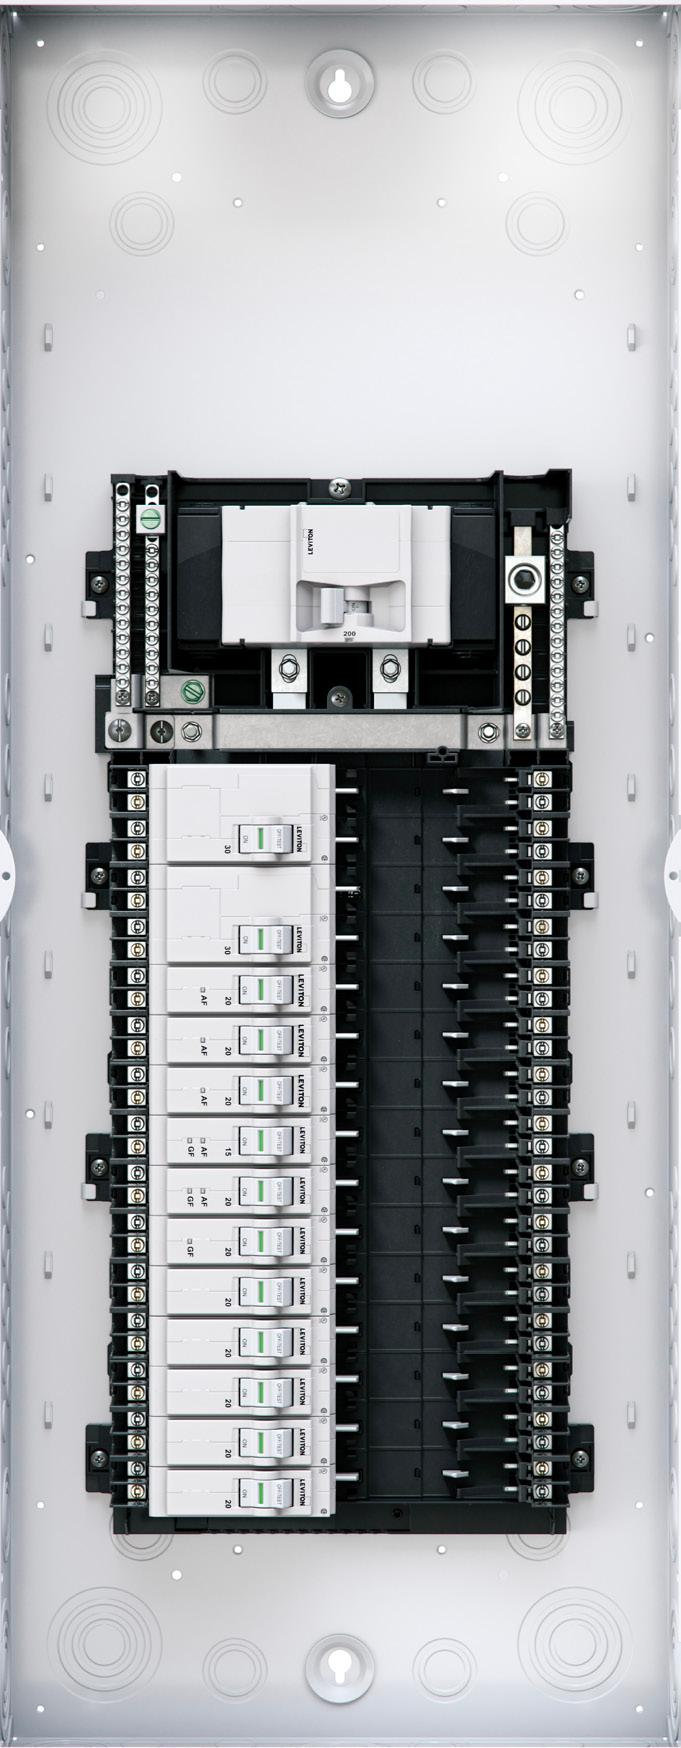 The Leviton Load Center Future Made Current Pdf Afci Breaker Box Including Ge Circuit Breakers Safety Priority One As Electrical Hub Of Home Starts At